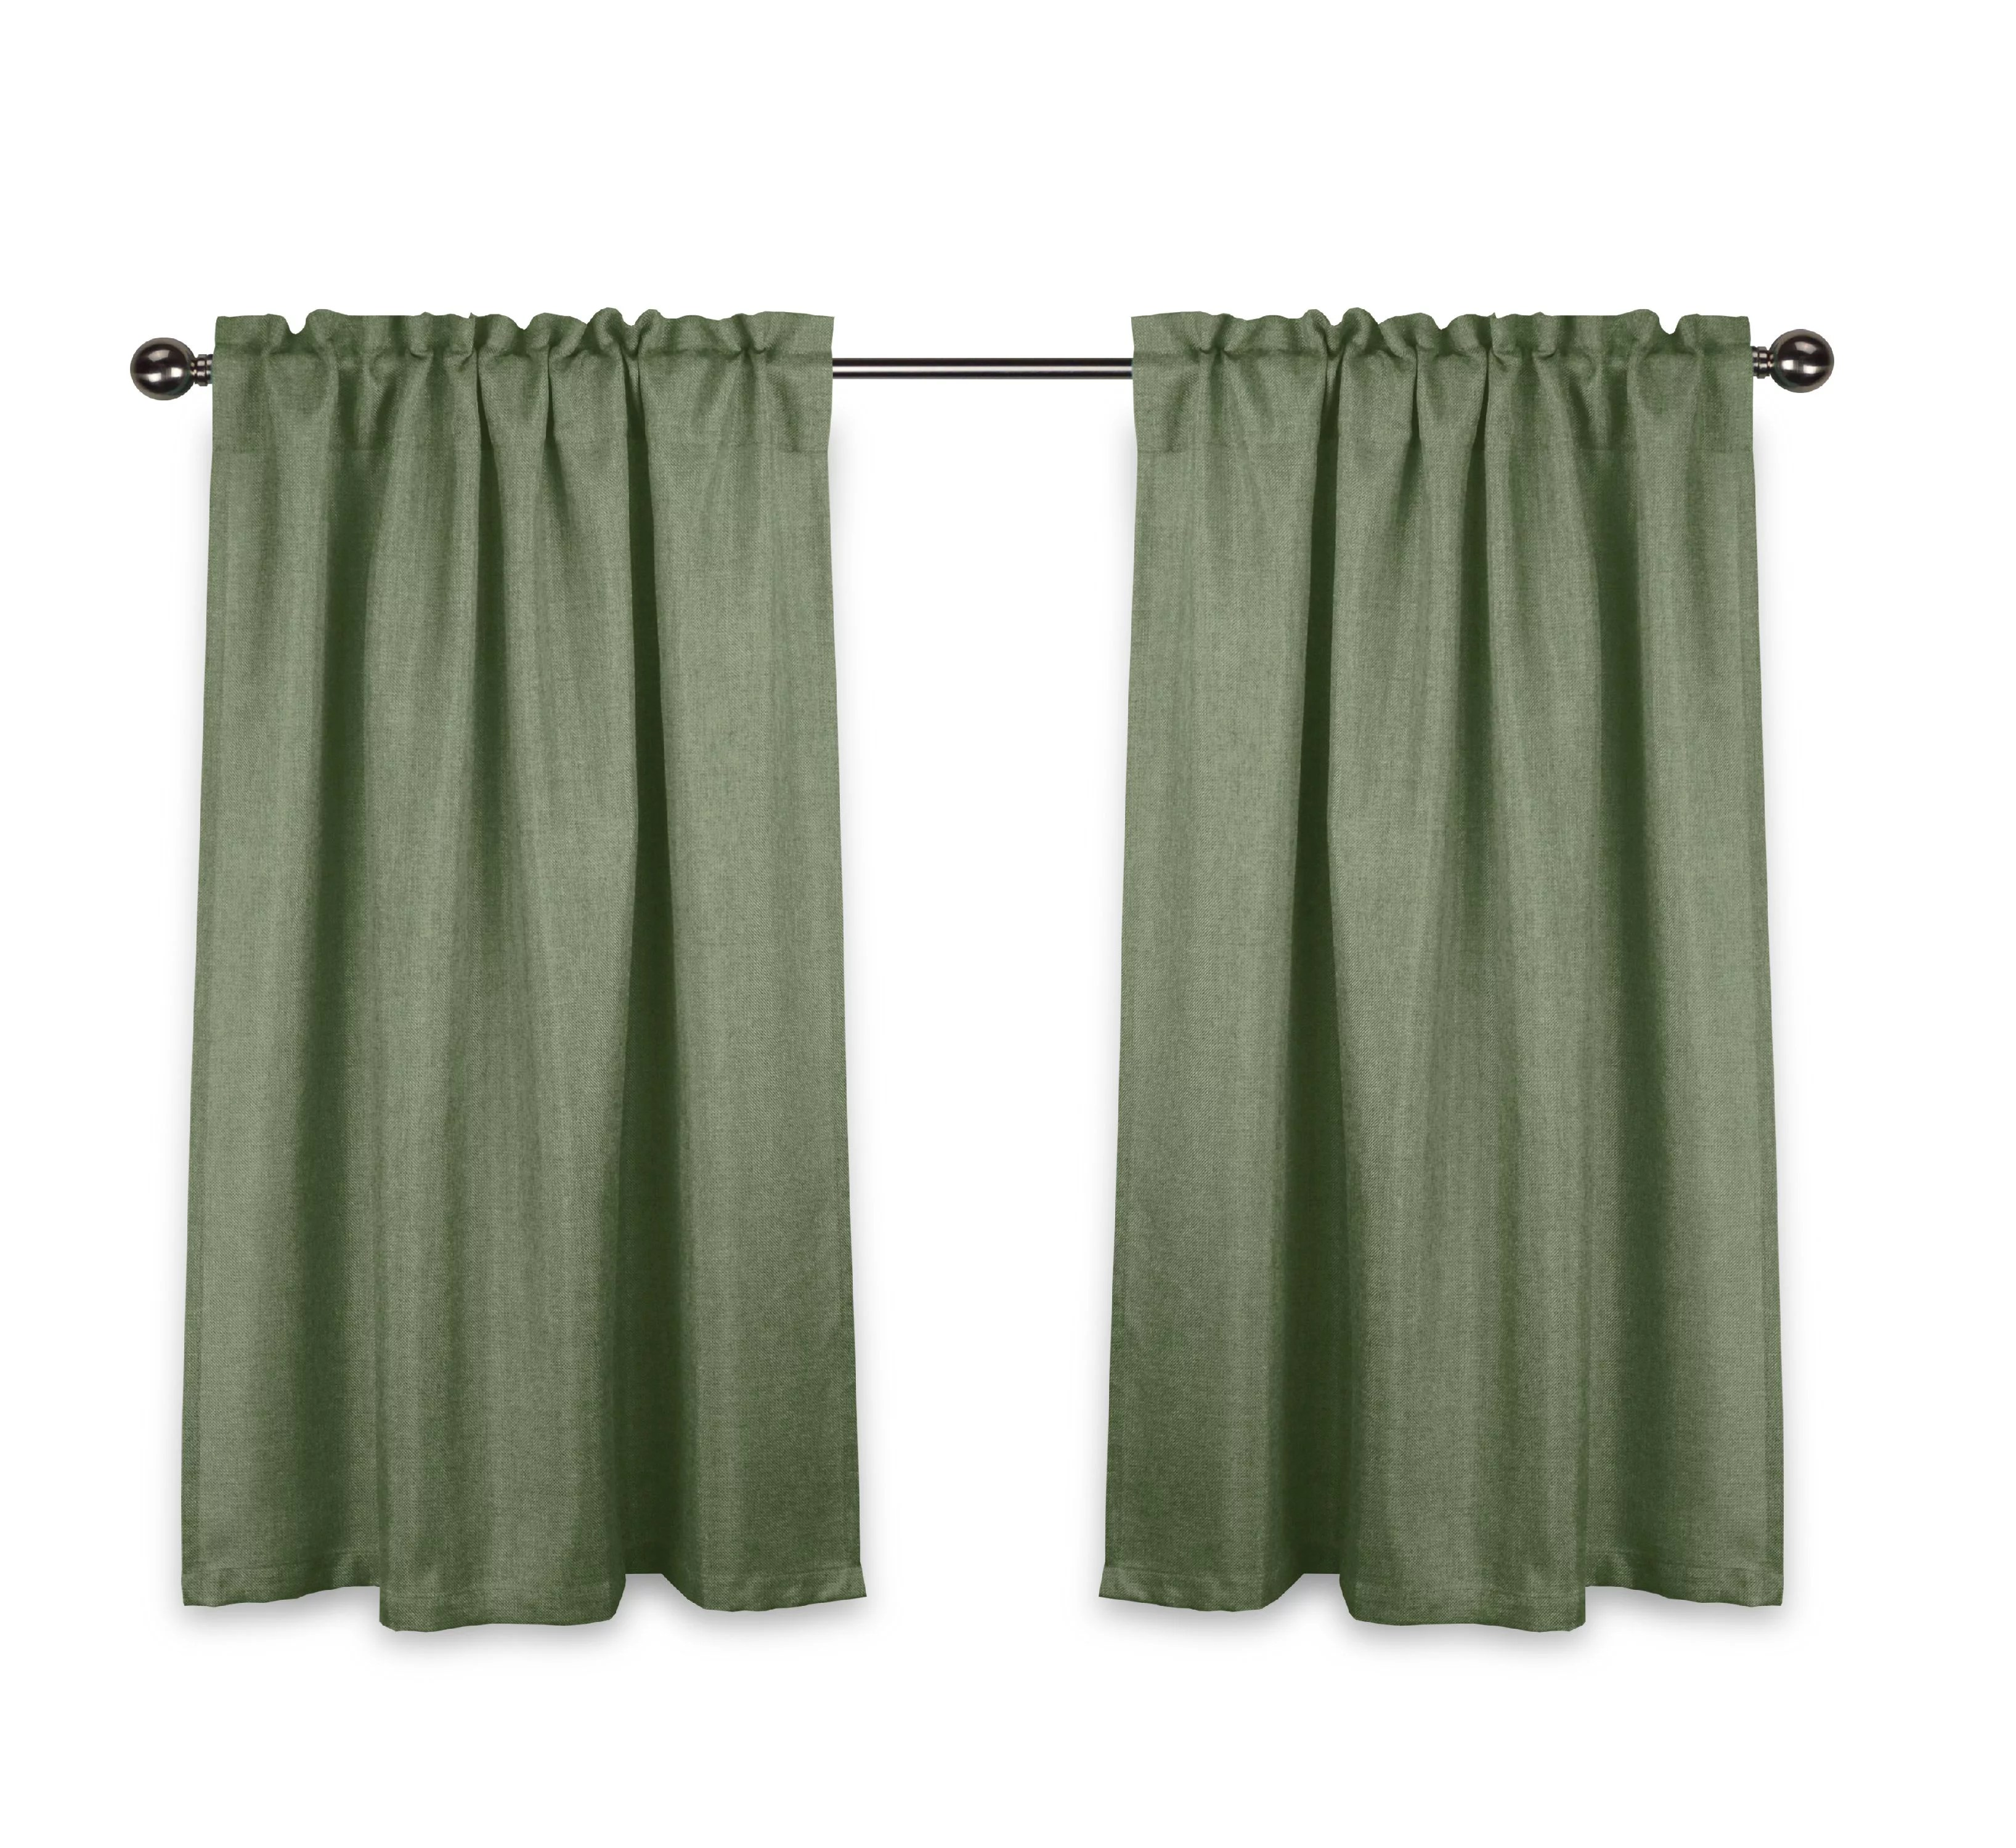 aiking home rod pocket faux linen textured semi sheer 36 inch cafe curtains tier panels for small window set of 2 28 x36 each panel basil